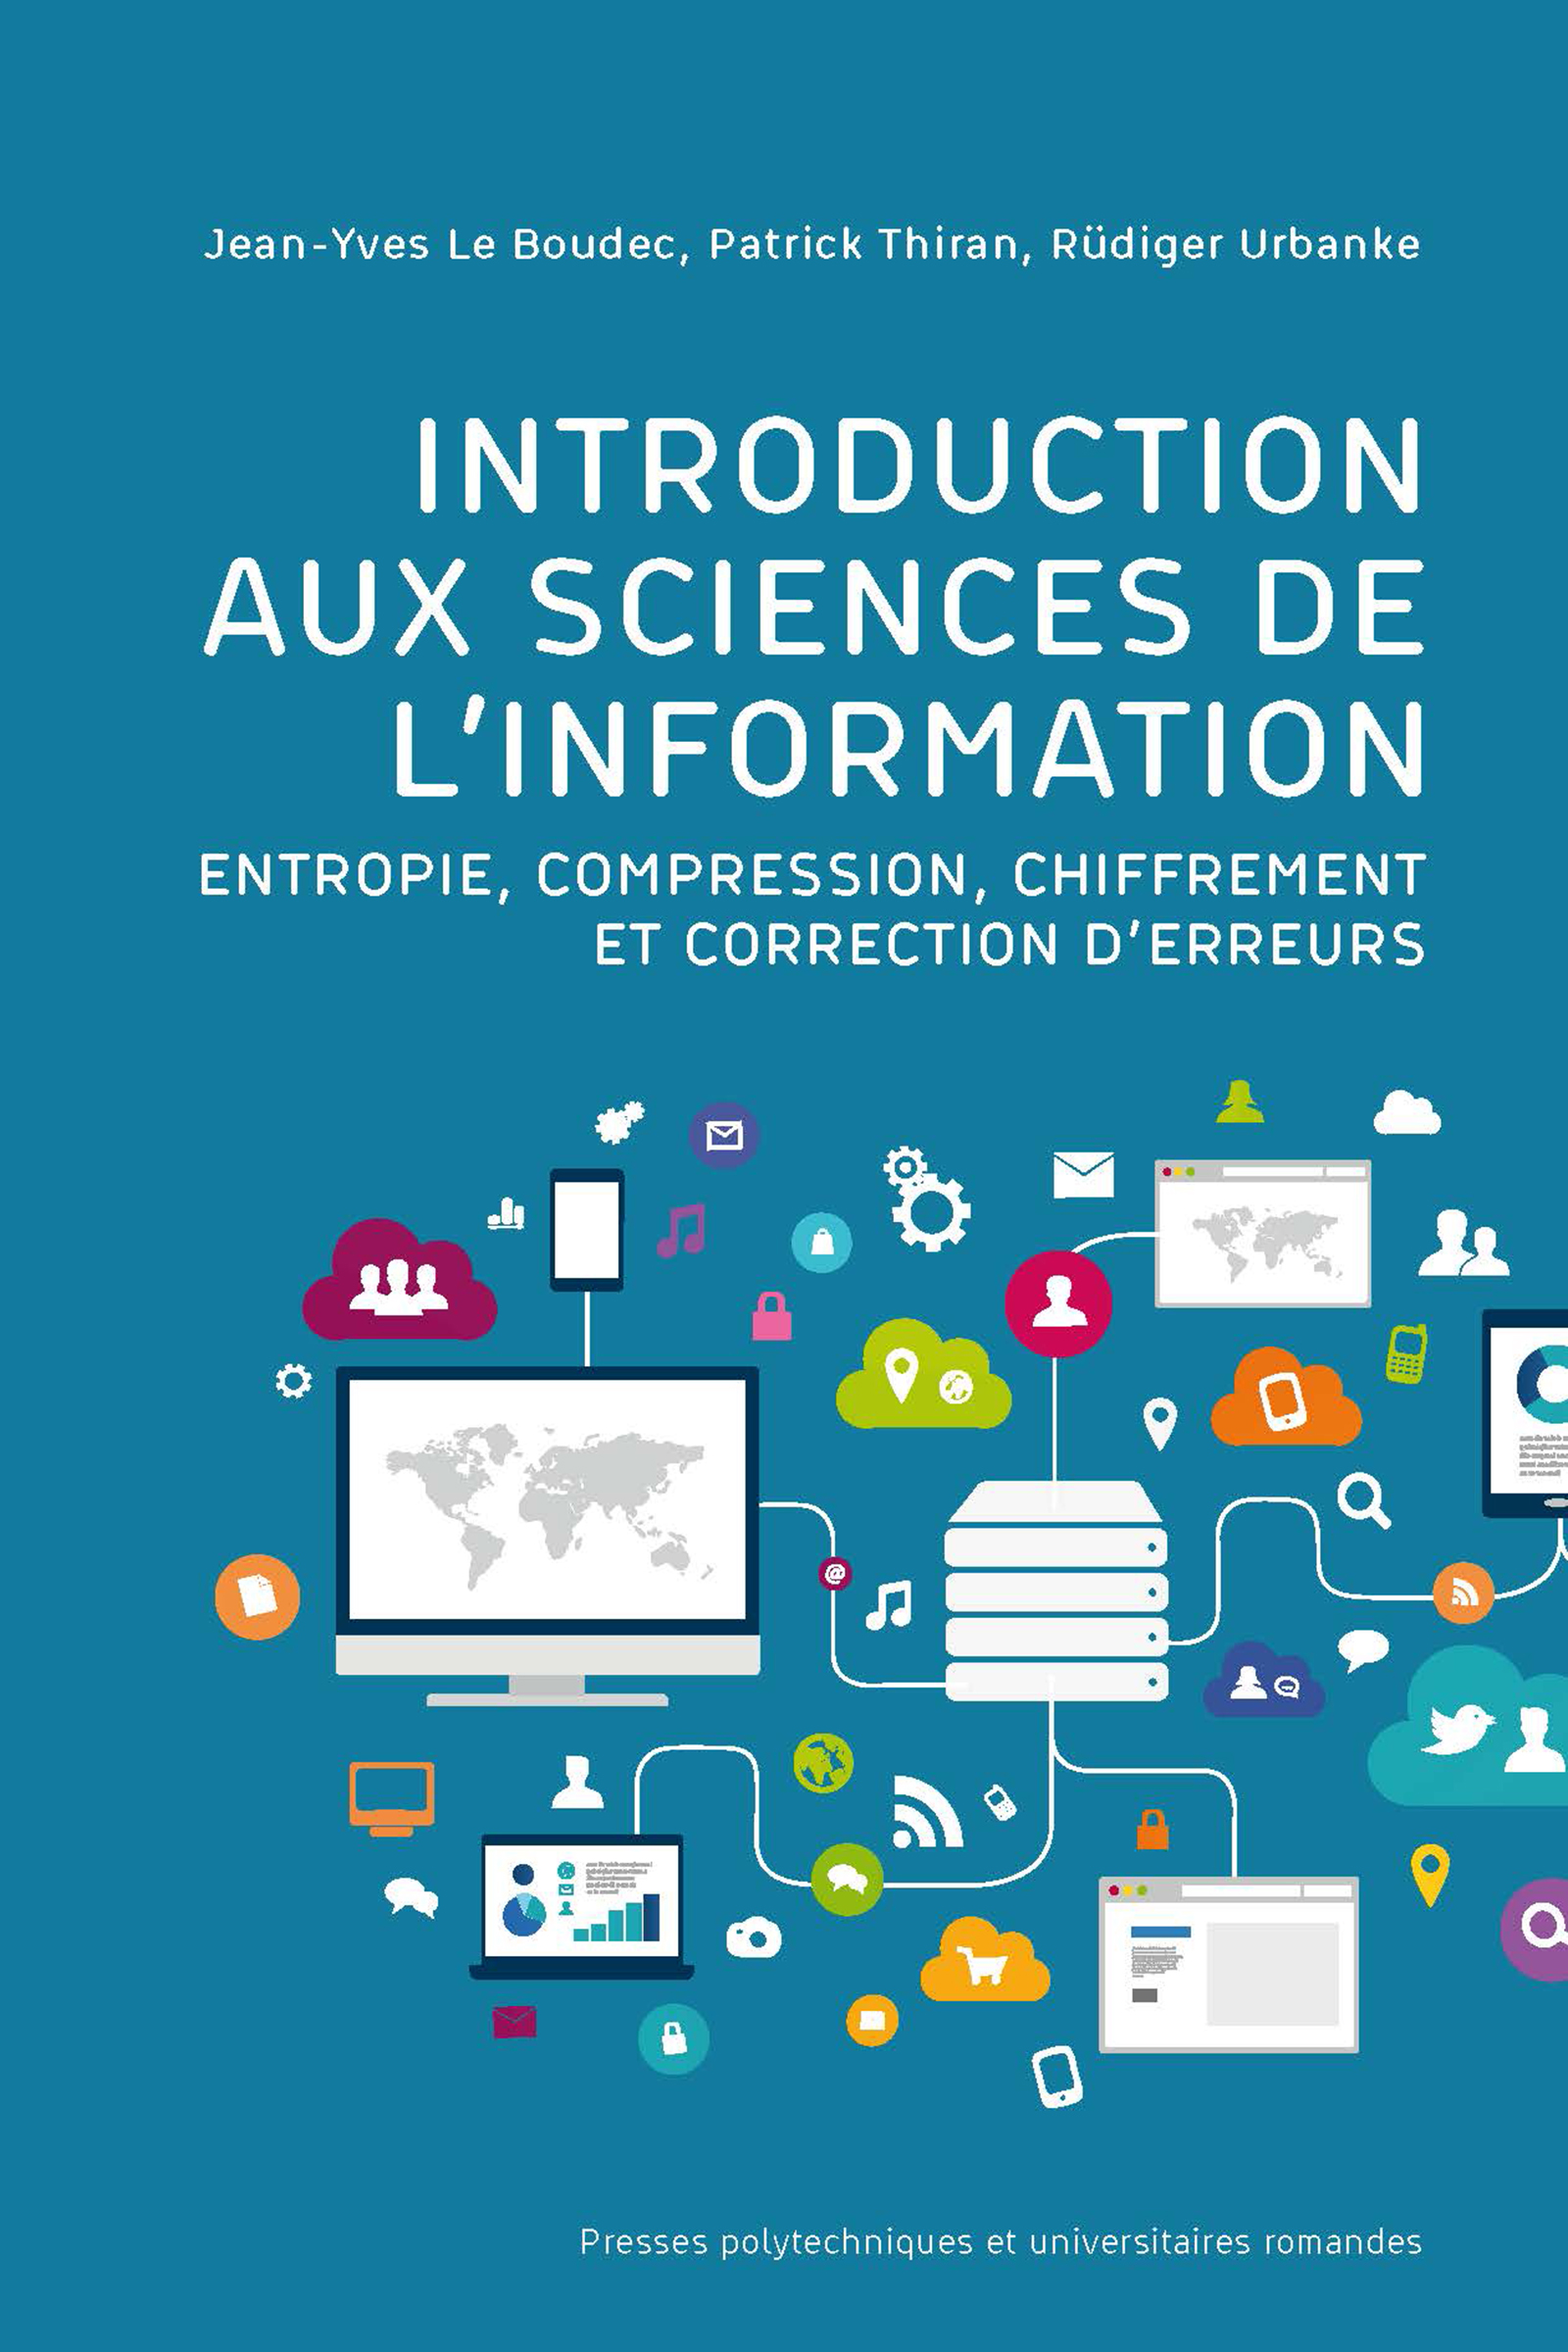 Introduction aux sciences de l'information